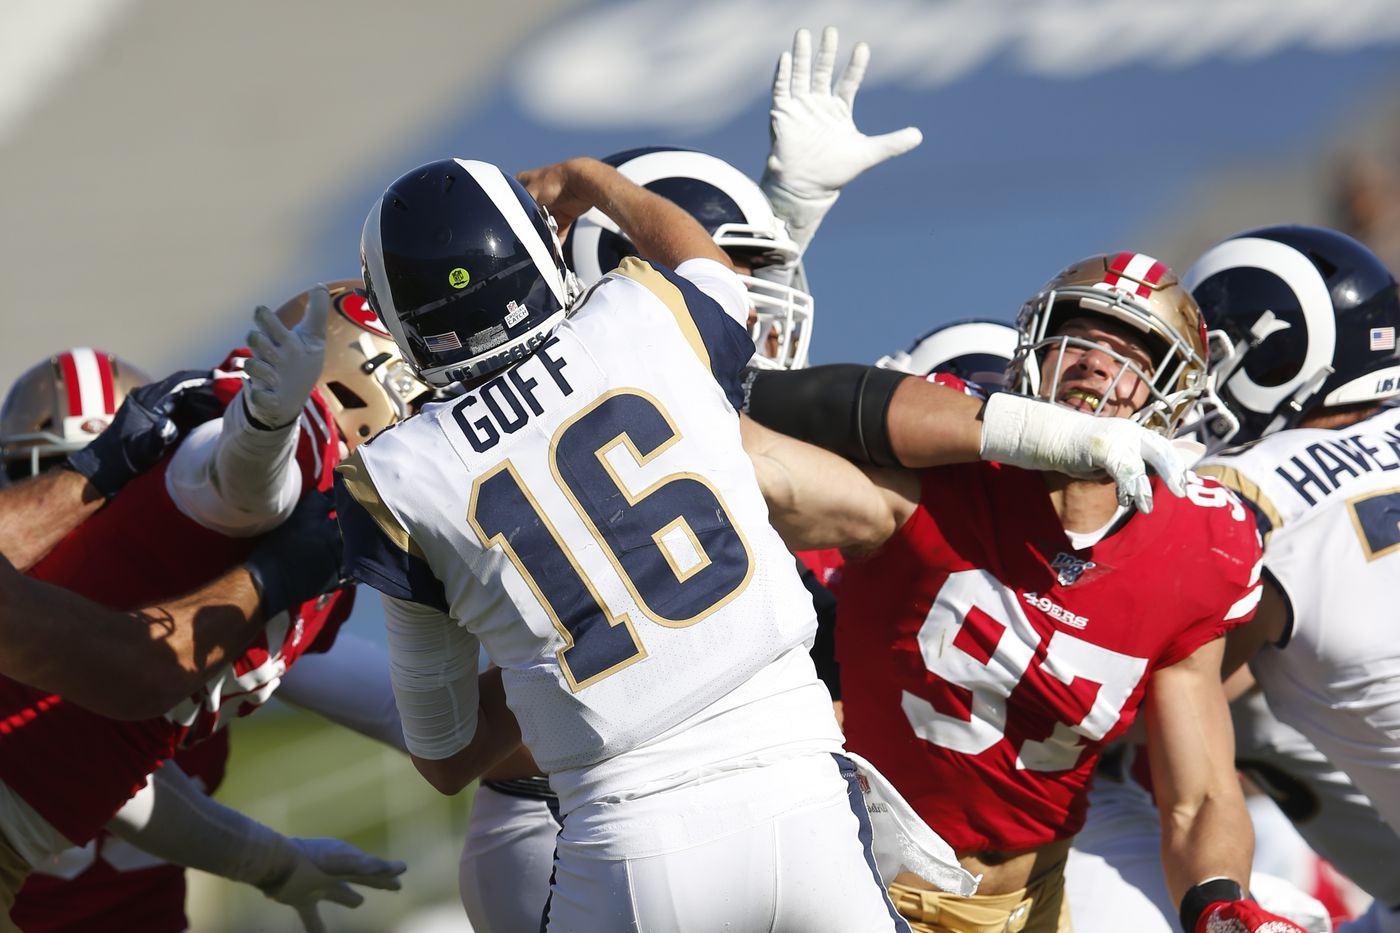 Nfl Week 16 Saturday Schedule Can Rams Help Packers Home Field Hopes Again Acme Packing Company